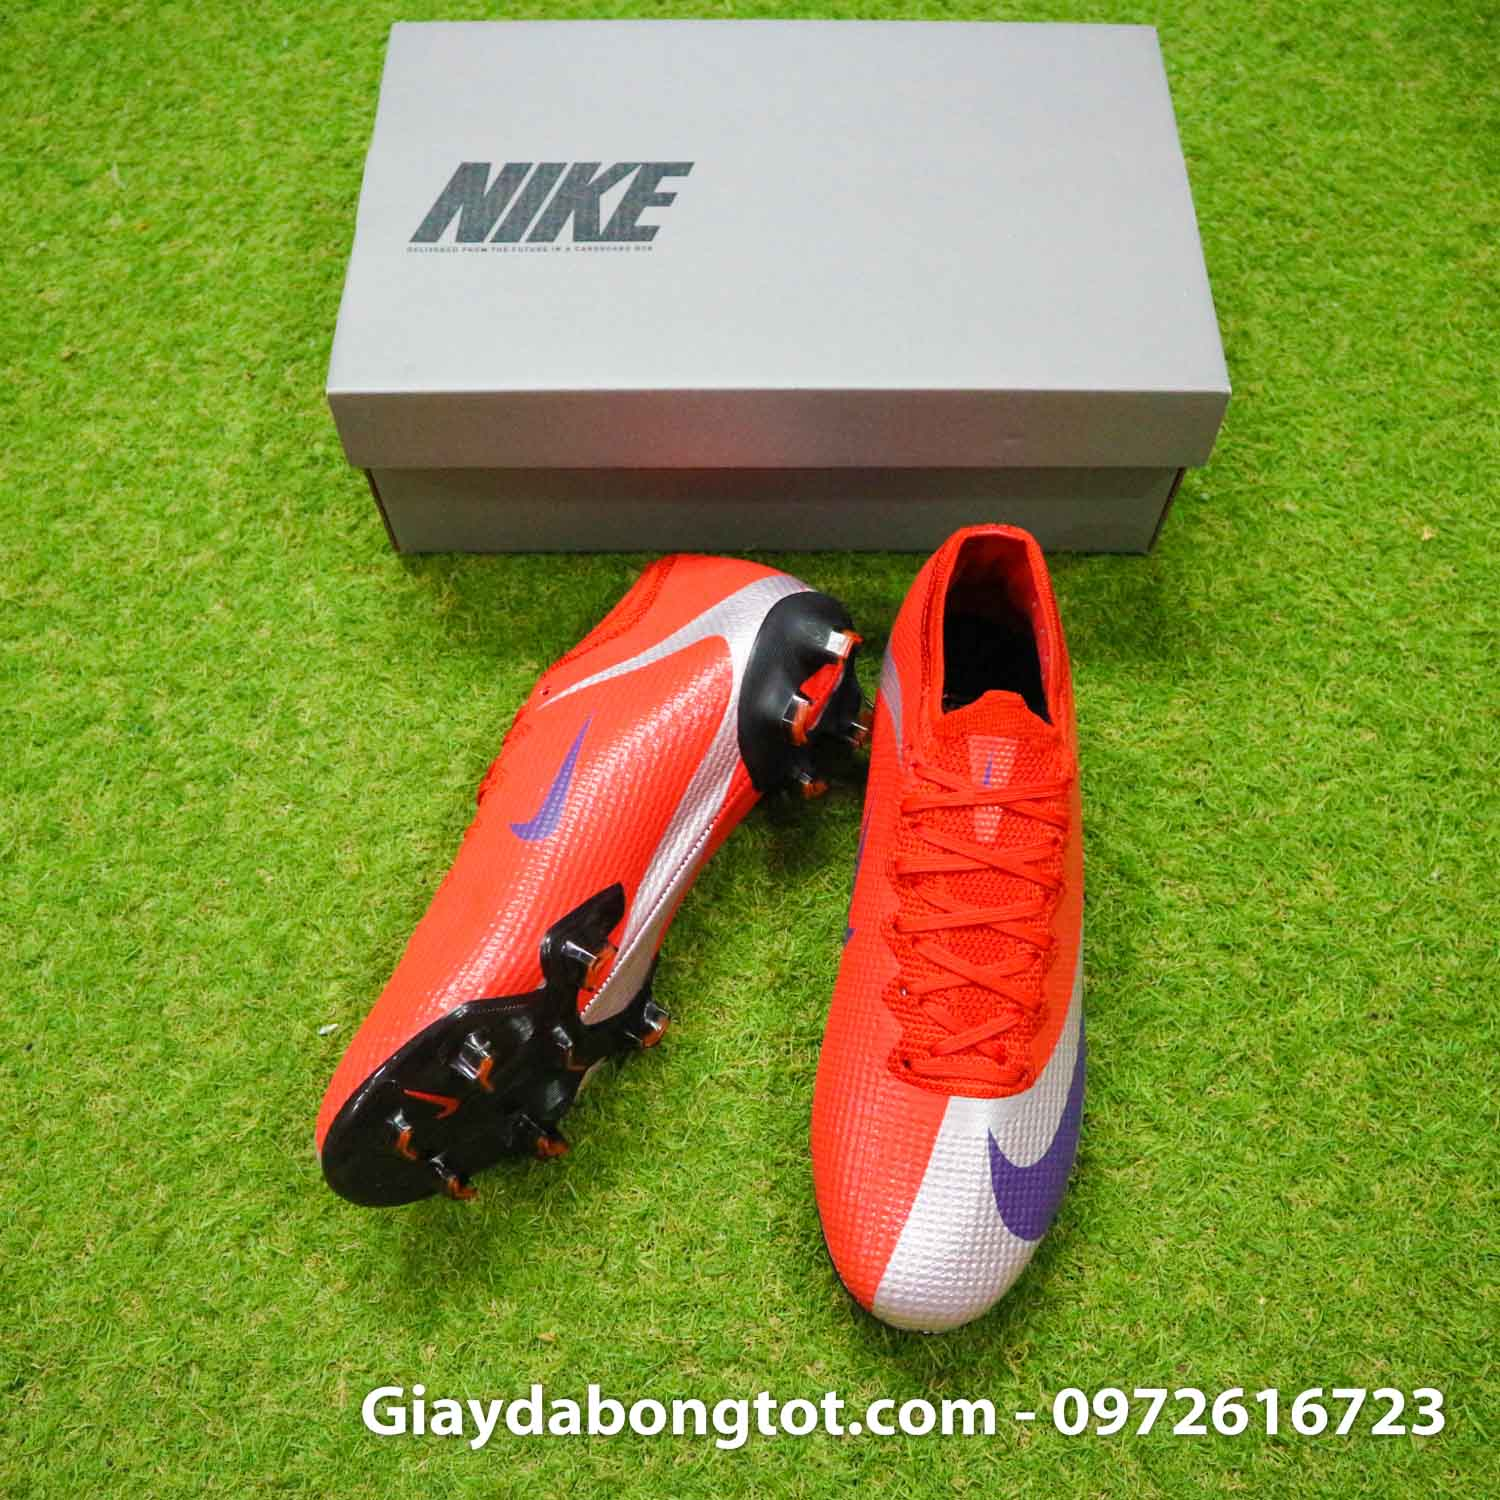 Giay bong da nike mercurial vapor 13 elite fg do bac future dna (5)